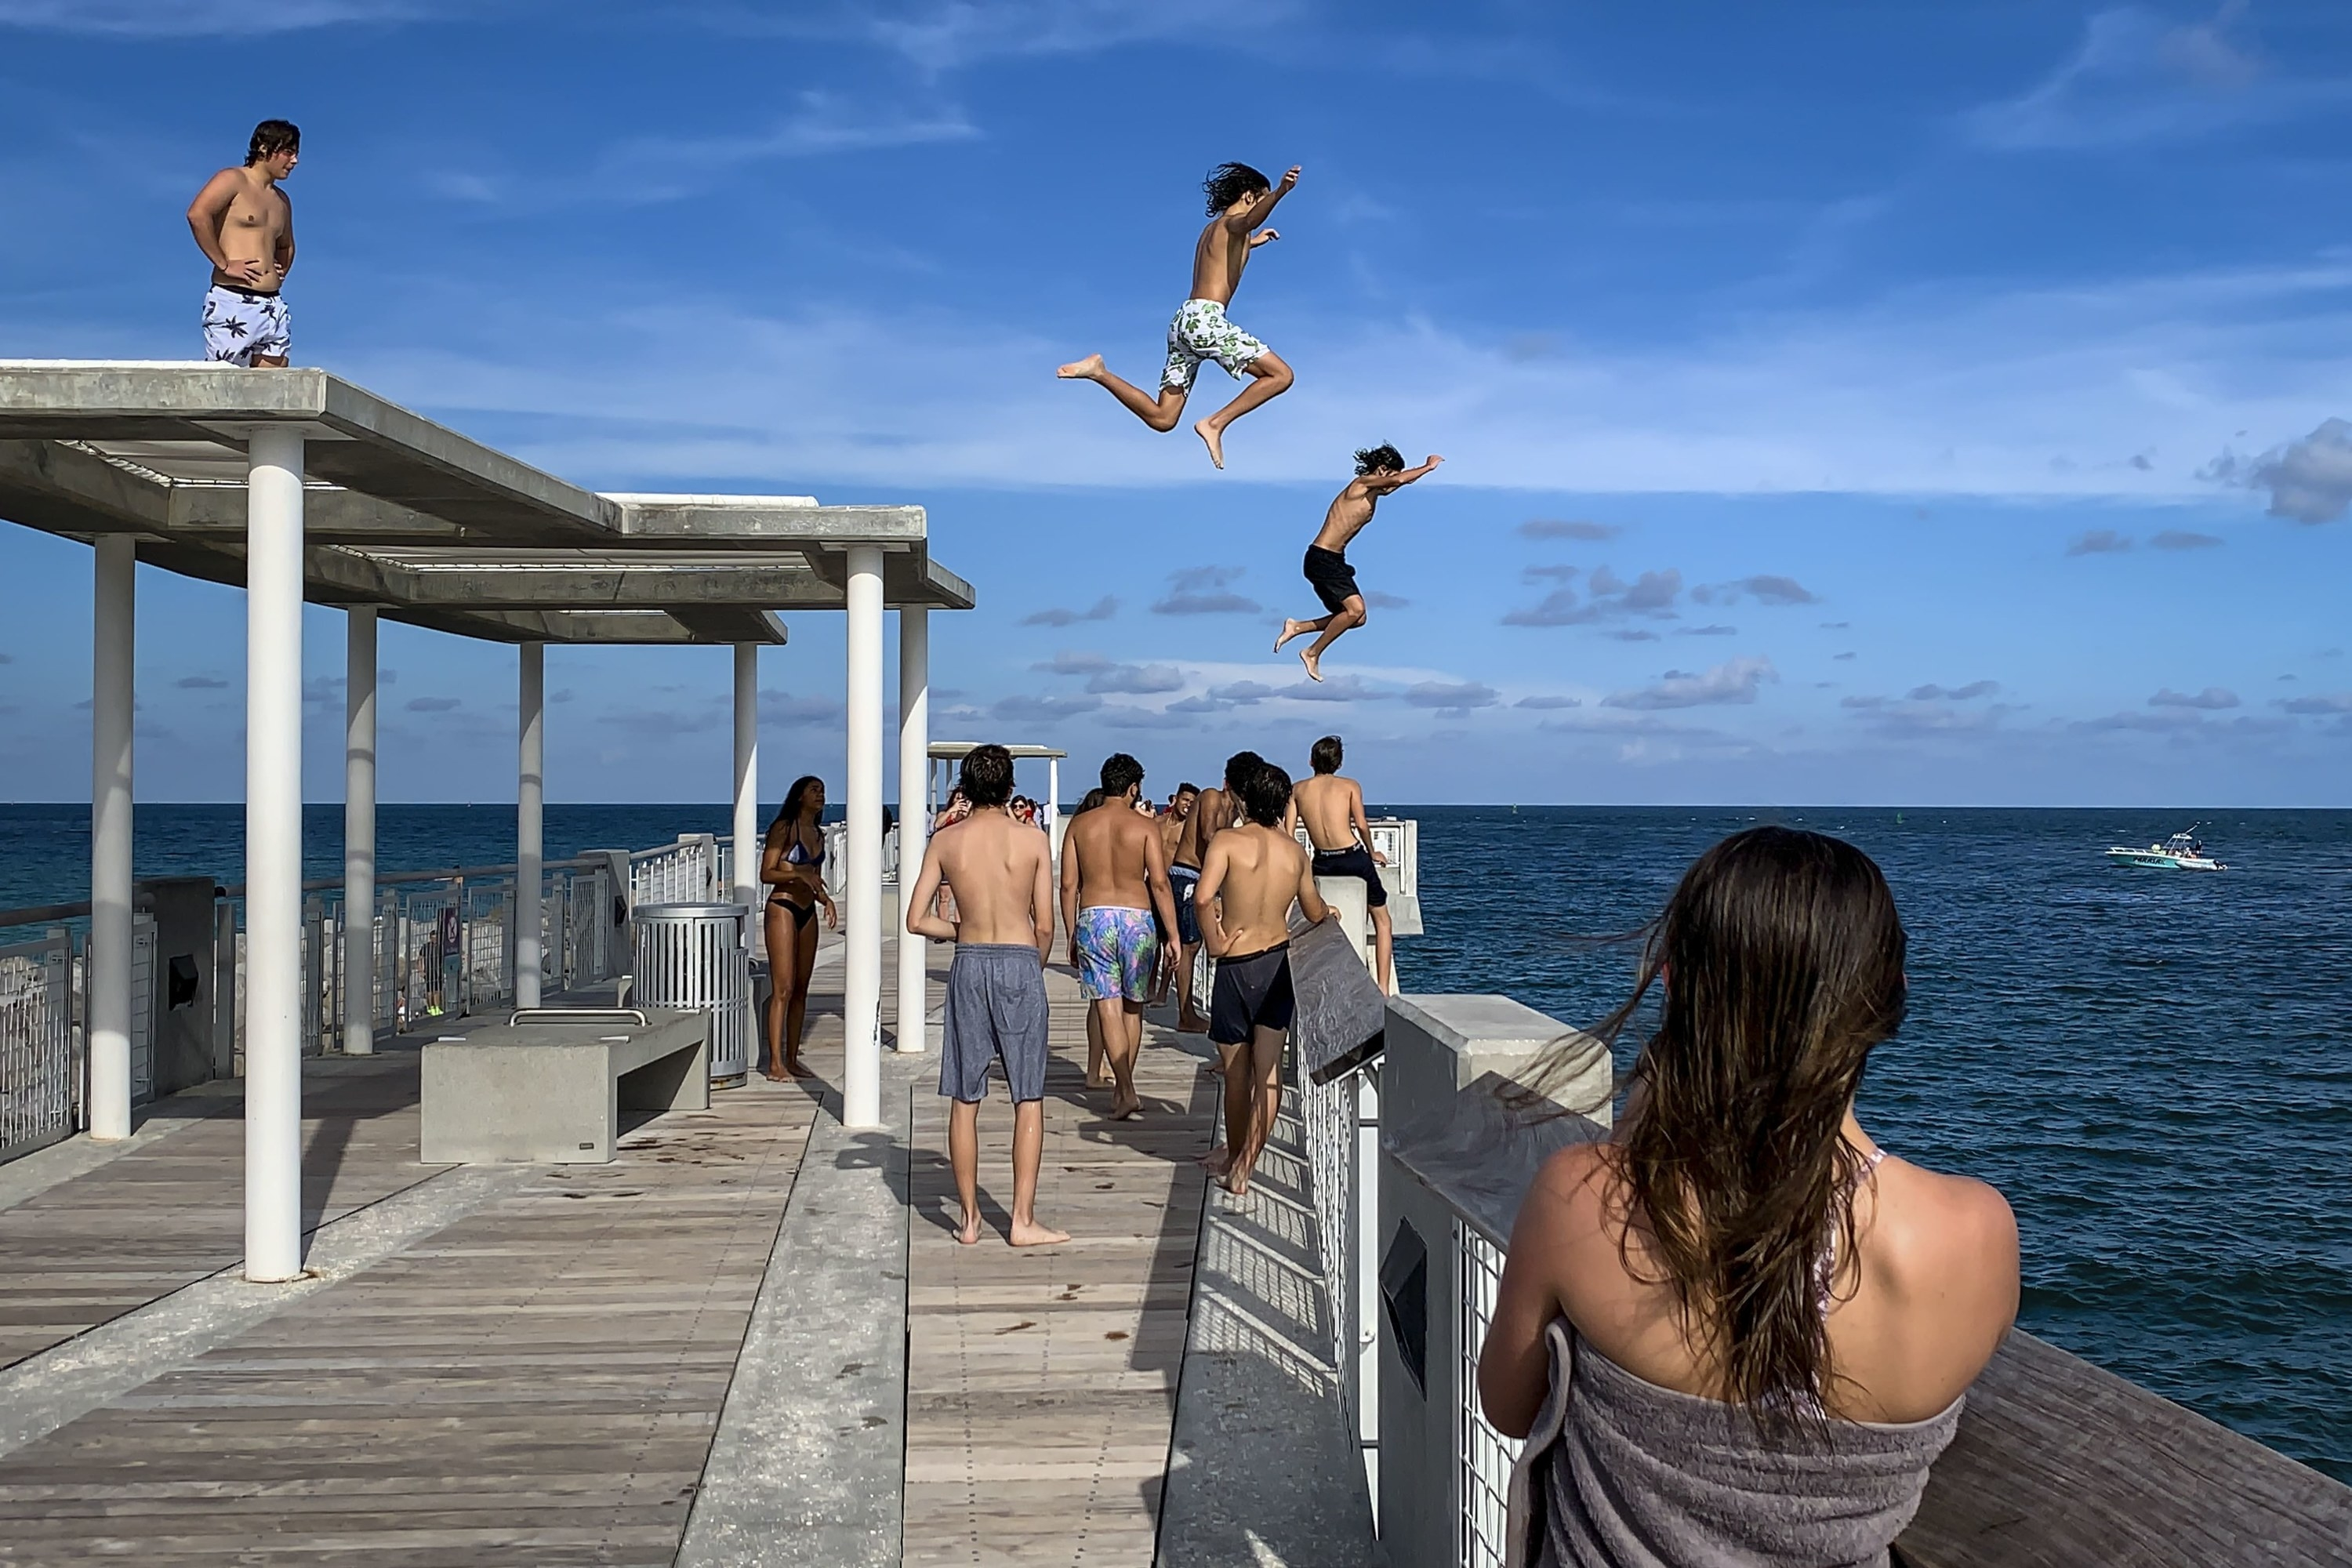 A group of kids jump off a dock while more kids watch